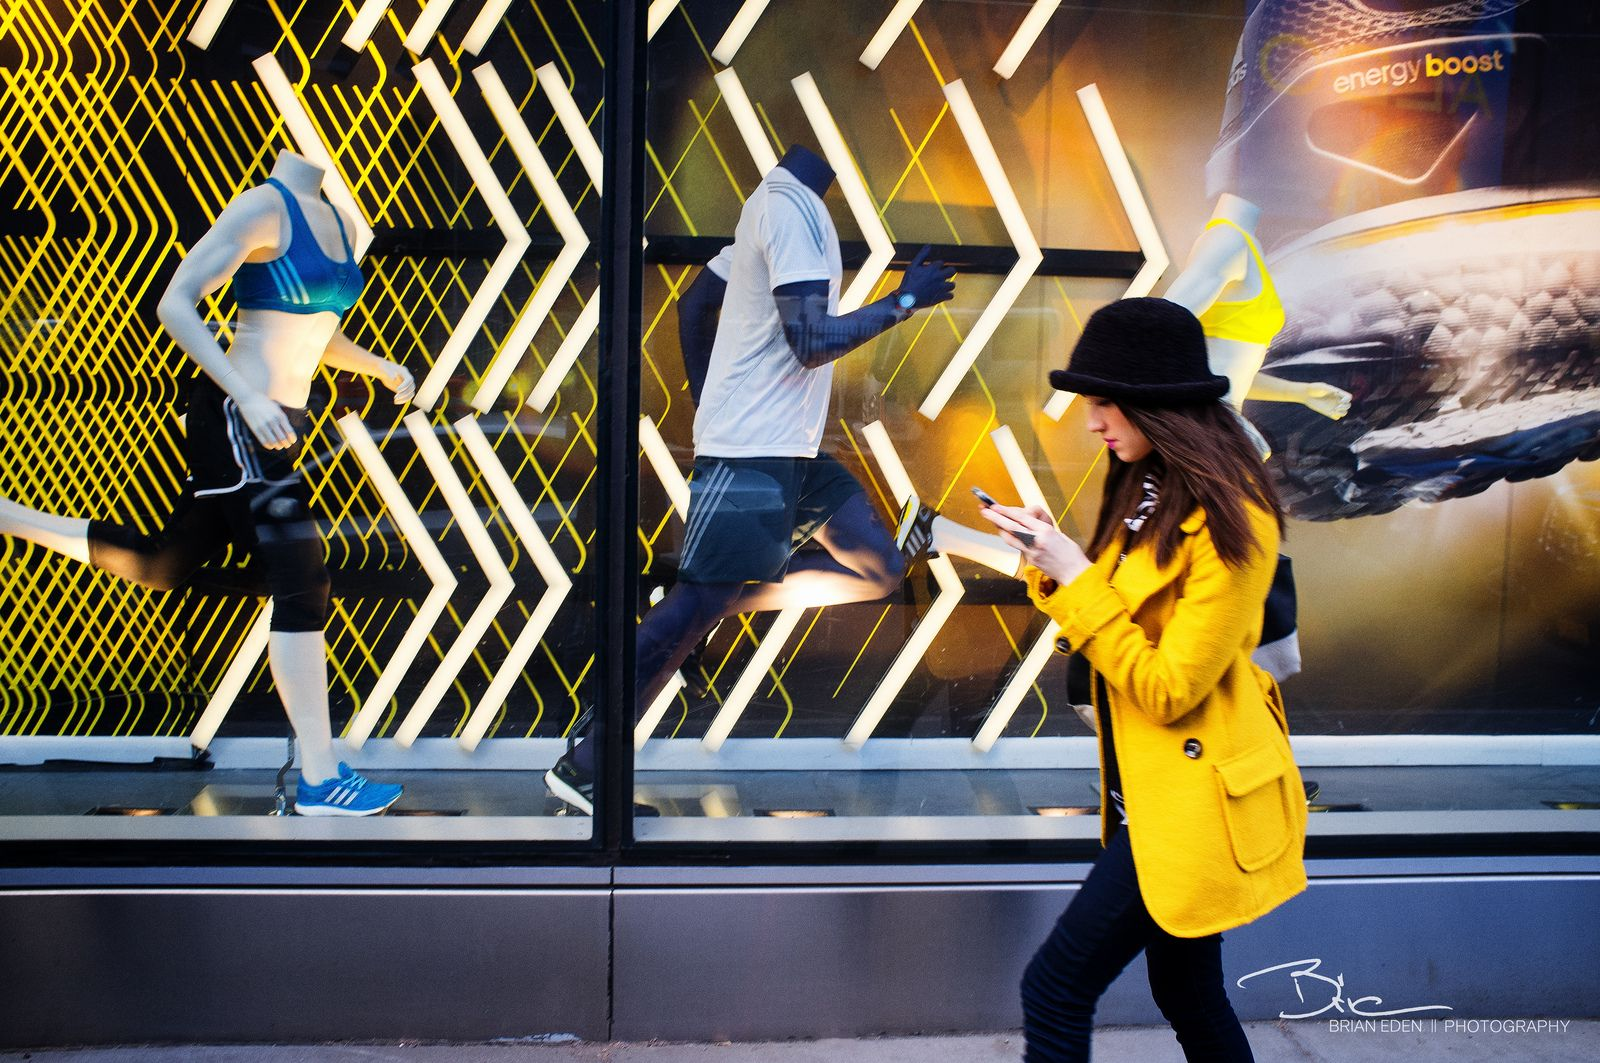 https://flic.kr/p/e6AEs8   Against the grain   I love the color coordination between the girl's outfit and the window display. The focus isn't great, but I'm lucky to have even gotten the shot off. Just barely snagged this one. The Adidas store on Houston and Broadway in Soho, New York www.brianedenphotography.com www.facebook.com/BrianEdenPhotography